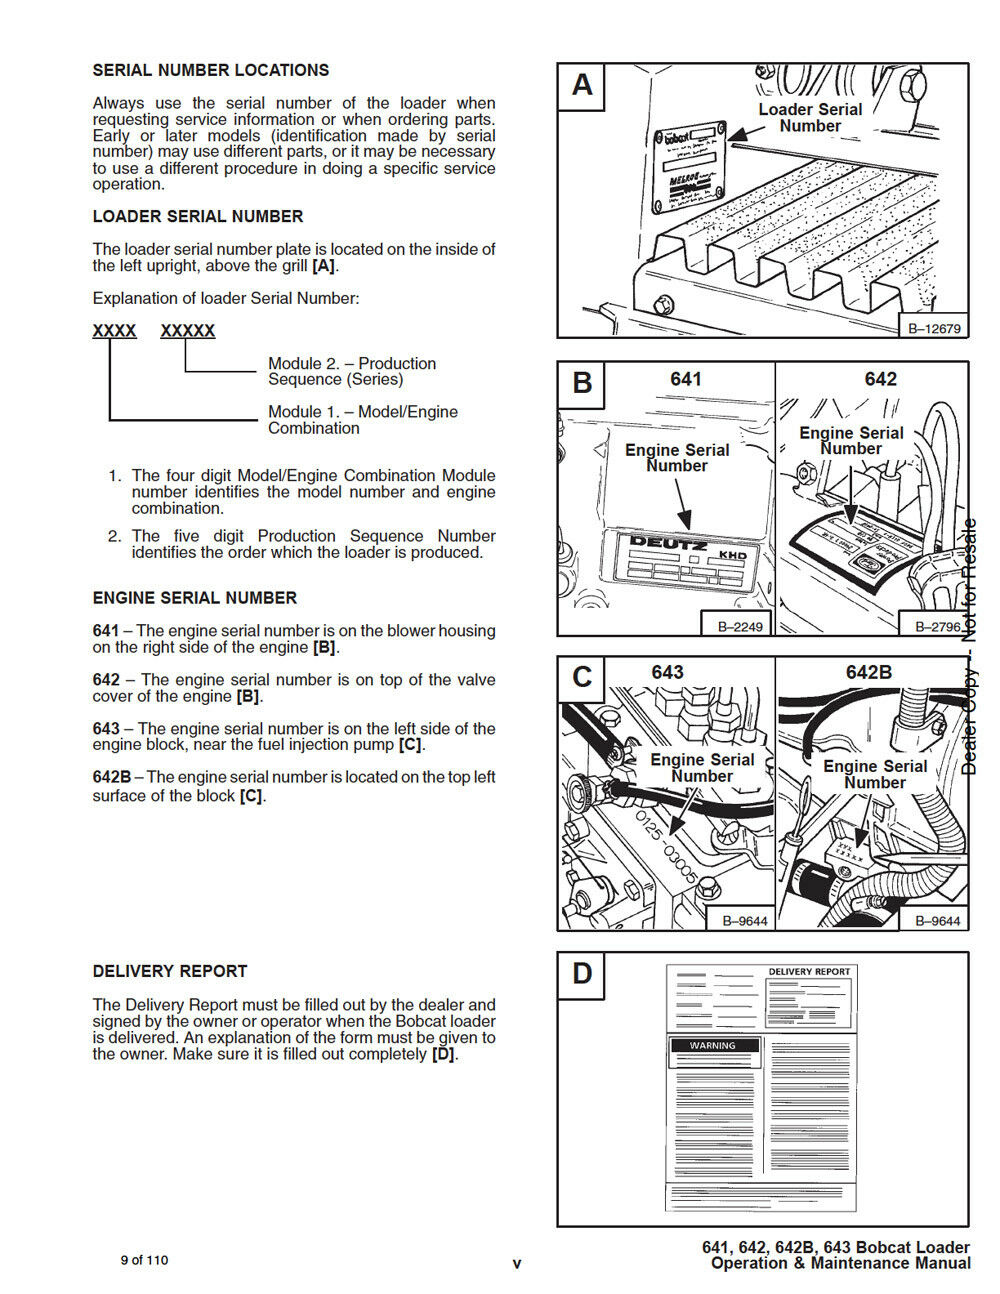 hight resolution of 642 bobcat wiring diagram layout wiring diagrams u2022 rh laurafinlay co uk bobcat skid steer wiring